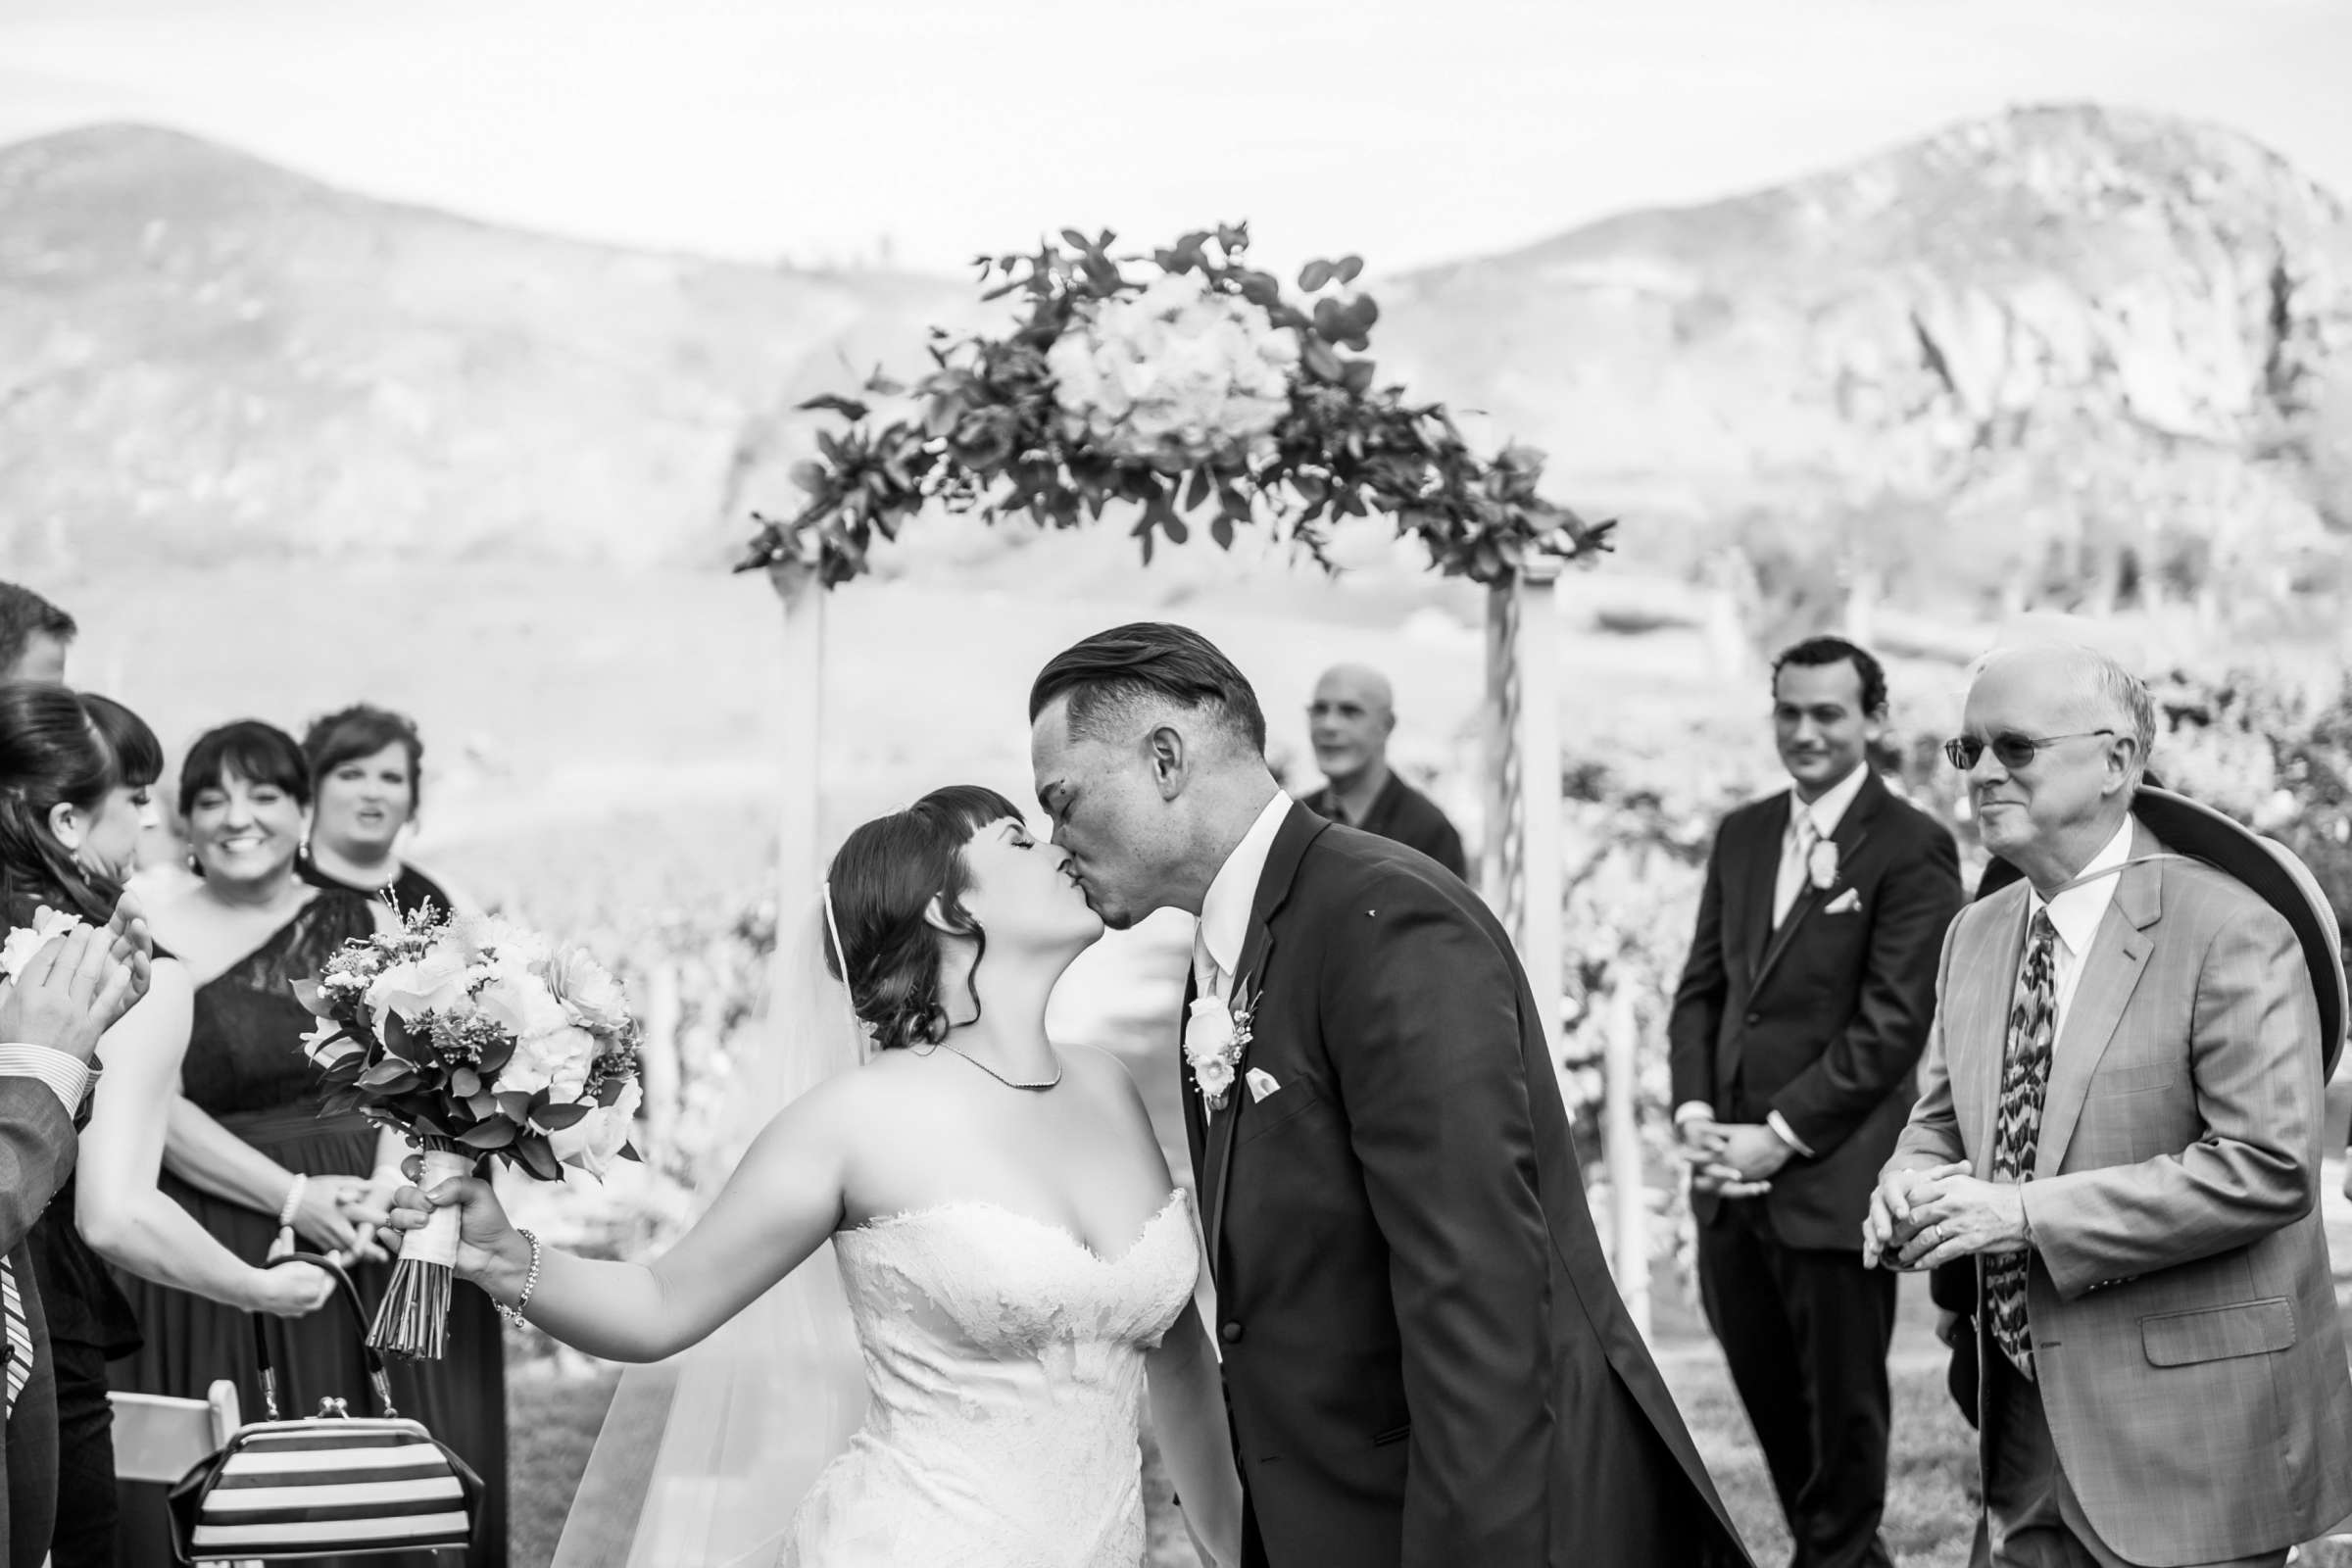 Orfila Vineyards Wedding, Tulasi and Richard Wedding Photo #31 by True Photography